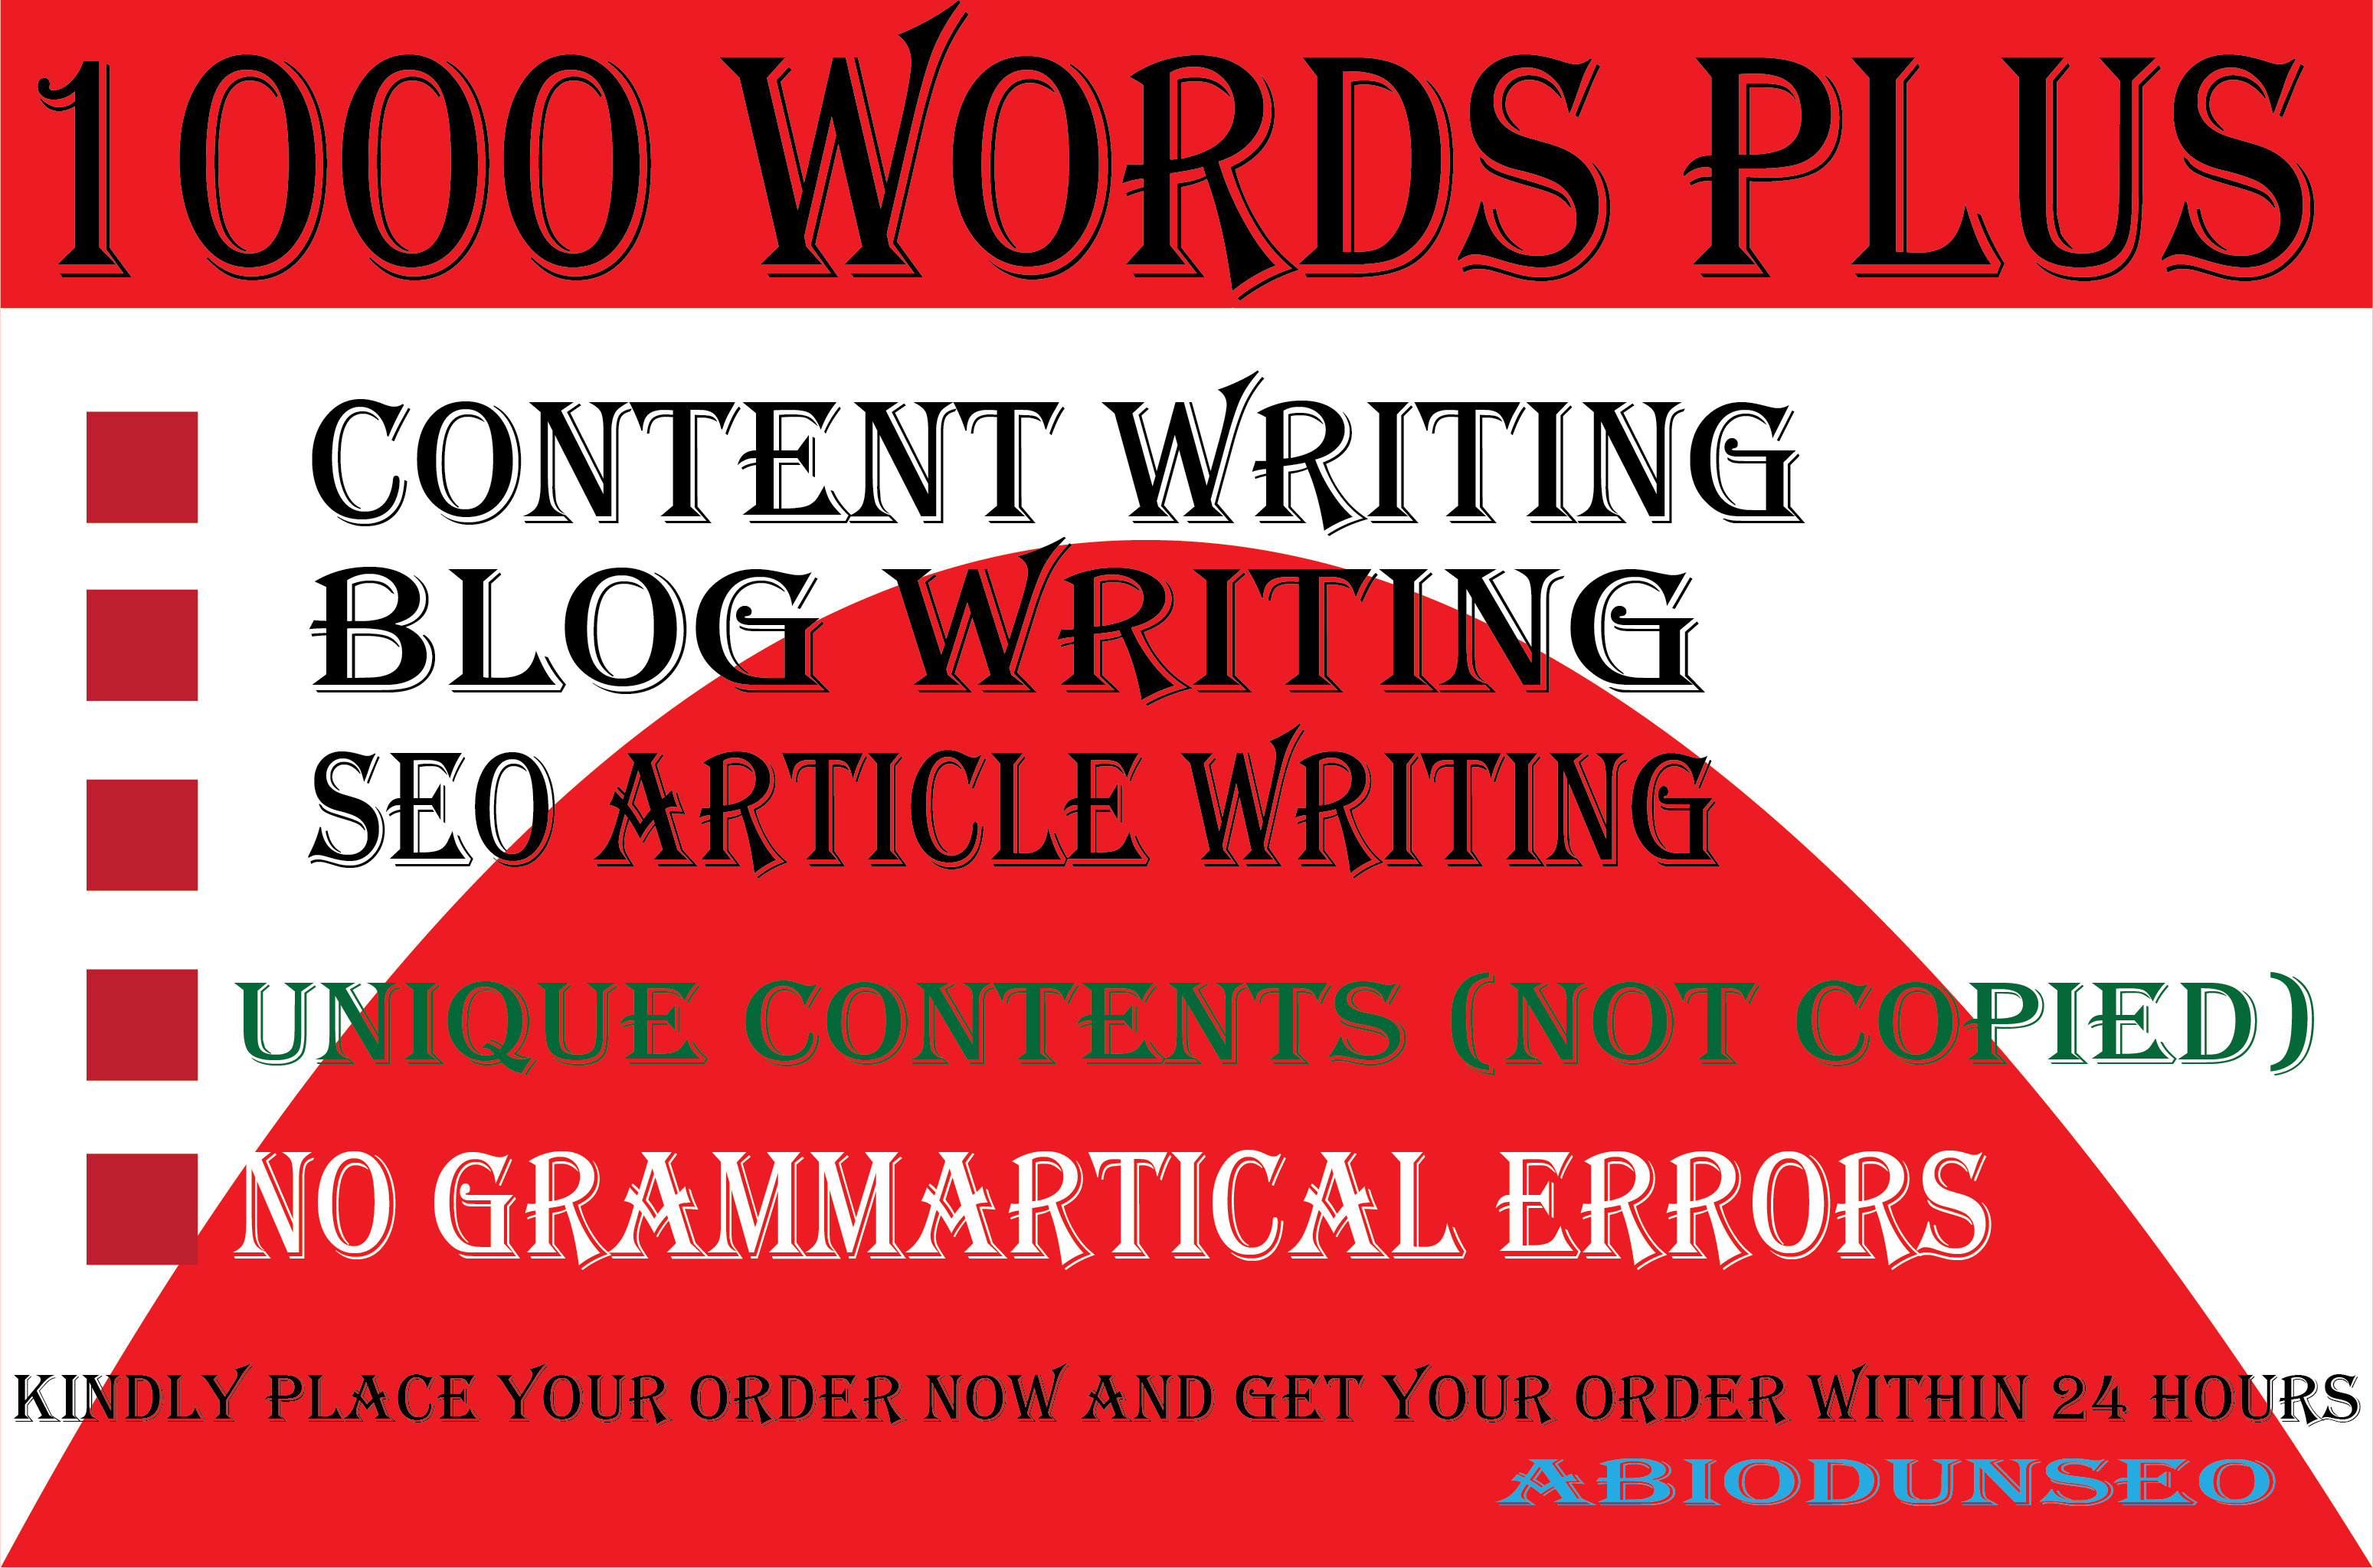 1000 well researched SEO website contents, blog posts, affiliate contents and articles writing